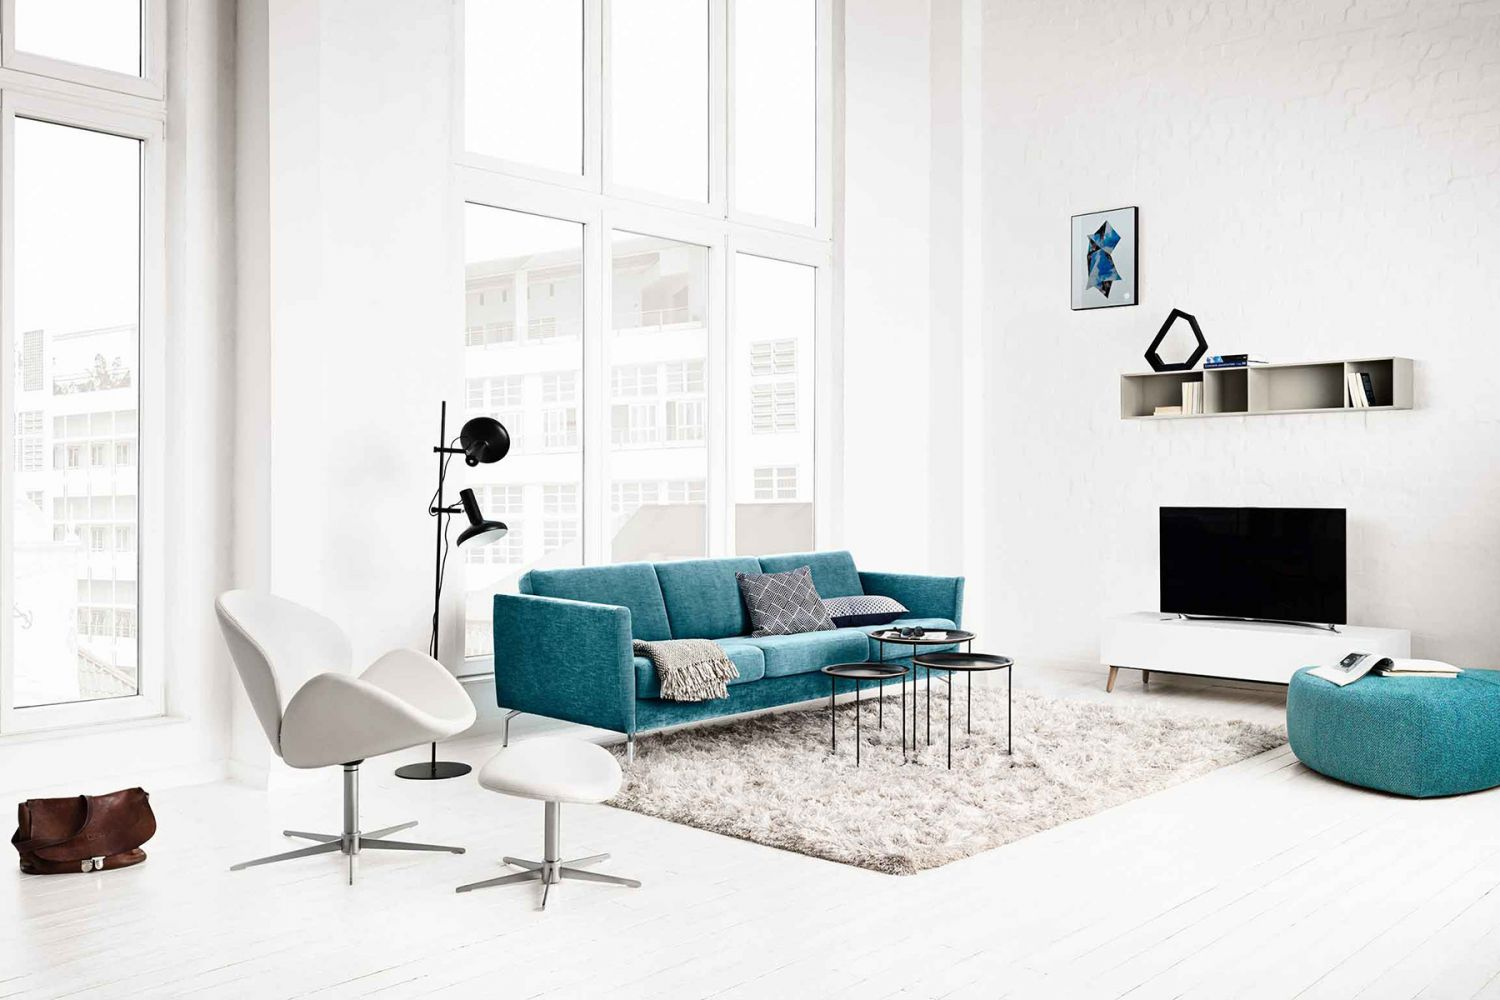 meuble designer boconcept marseille meuble et d coration marseille mobilier design. Black Bedroom Furniture Sets. Home Design Ideas